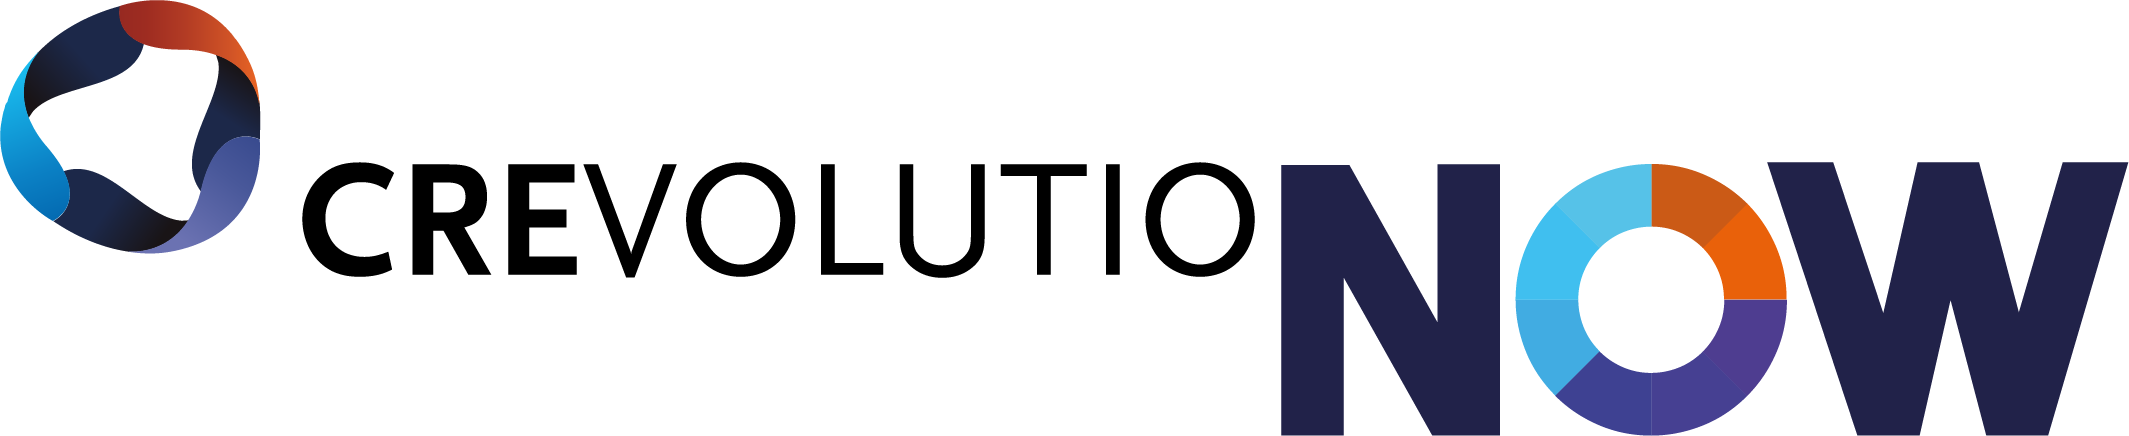 Logo_Crevolution Now